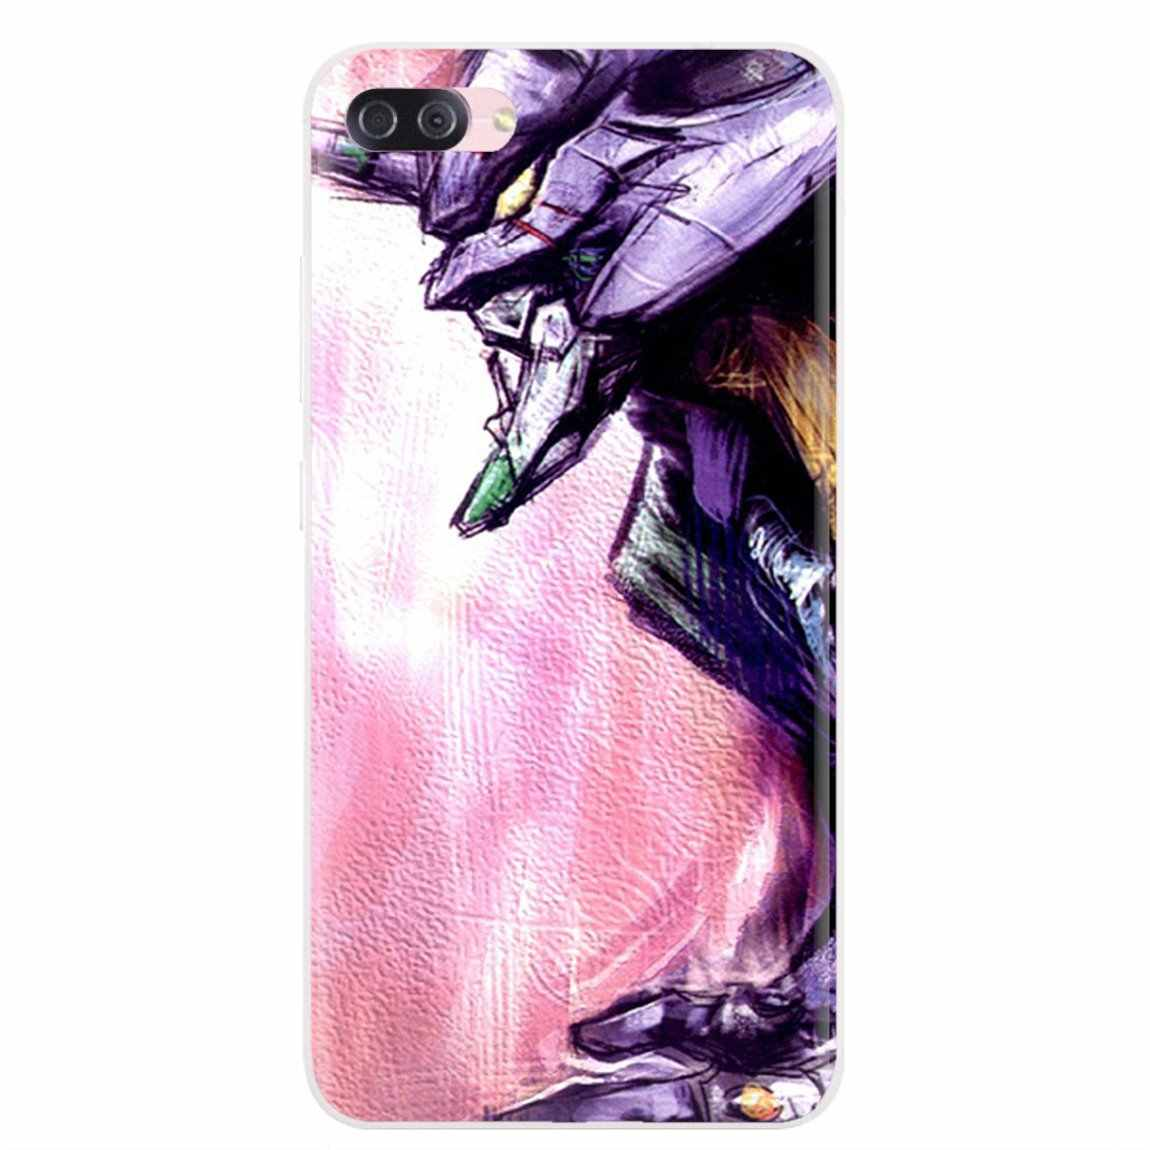 Evangelion יחידה אישית סיליקון טלפון מקרה עבור iPhone 11 פרו 4 4S 5 5S SE 5C 6 6S 7 8 X XR XS בתוספת מקסימום עבור iPod Touch